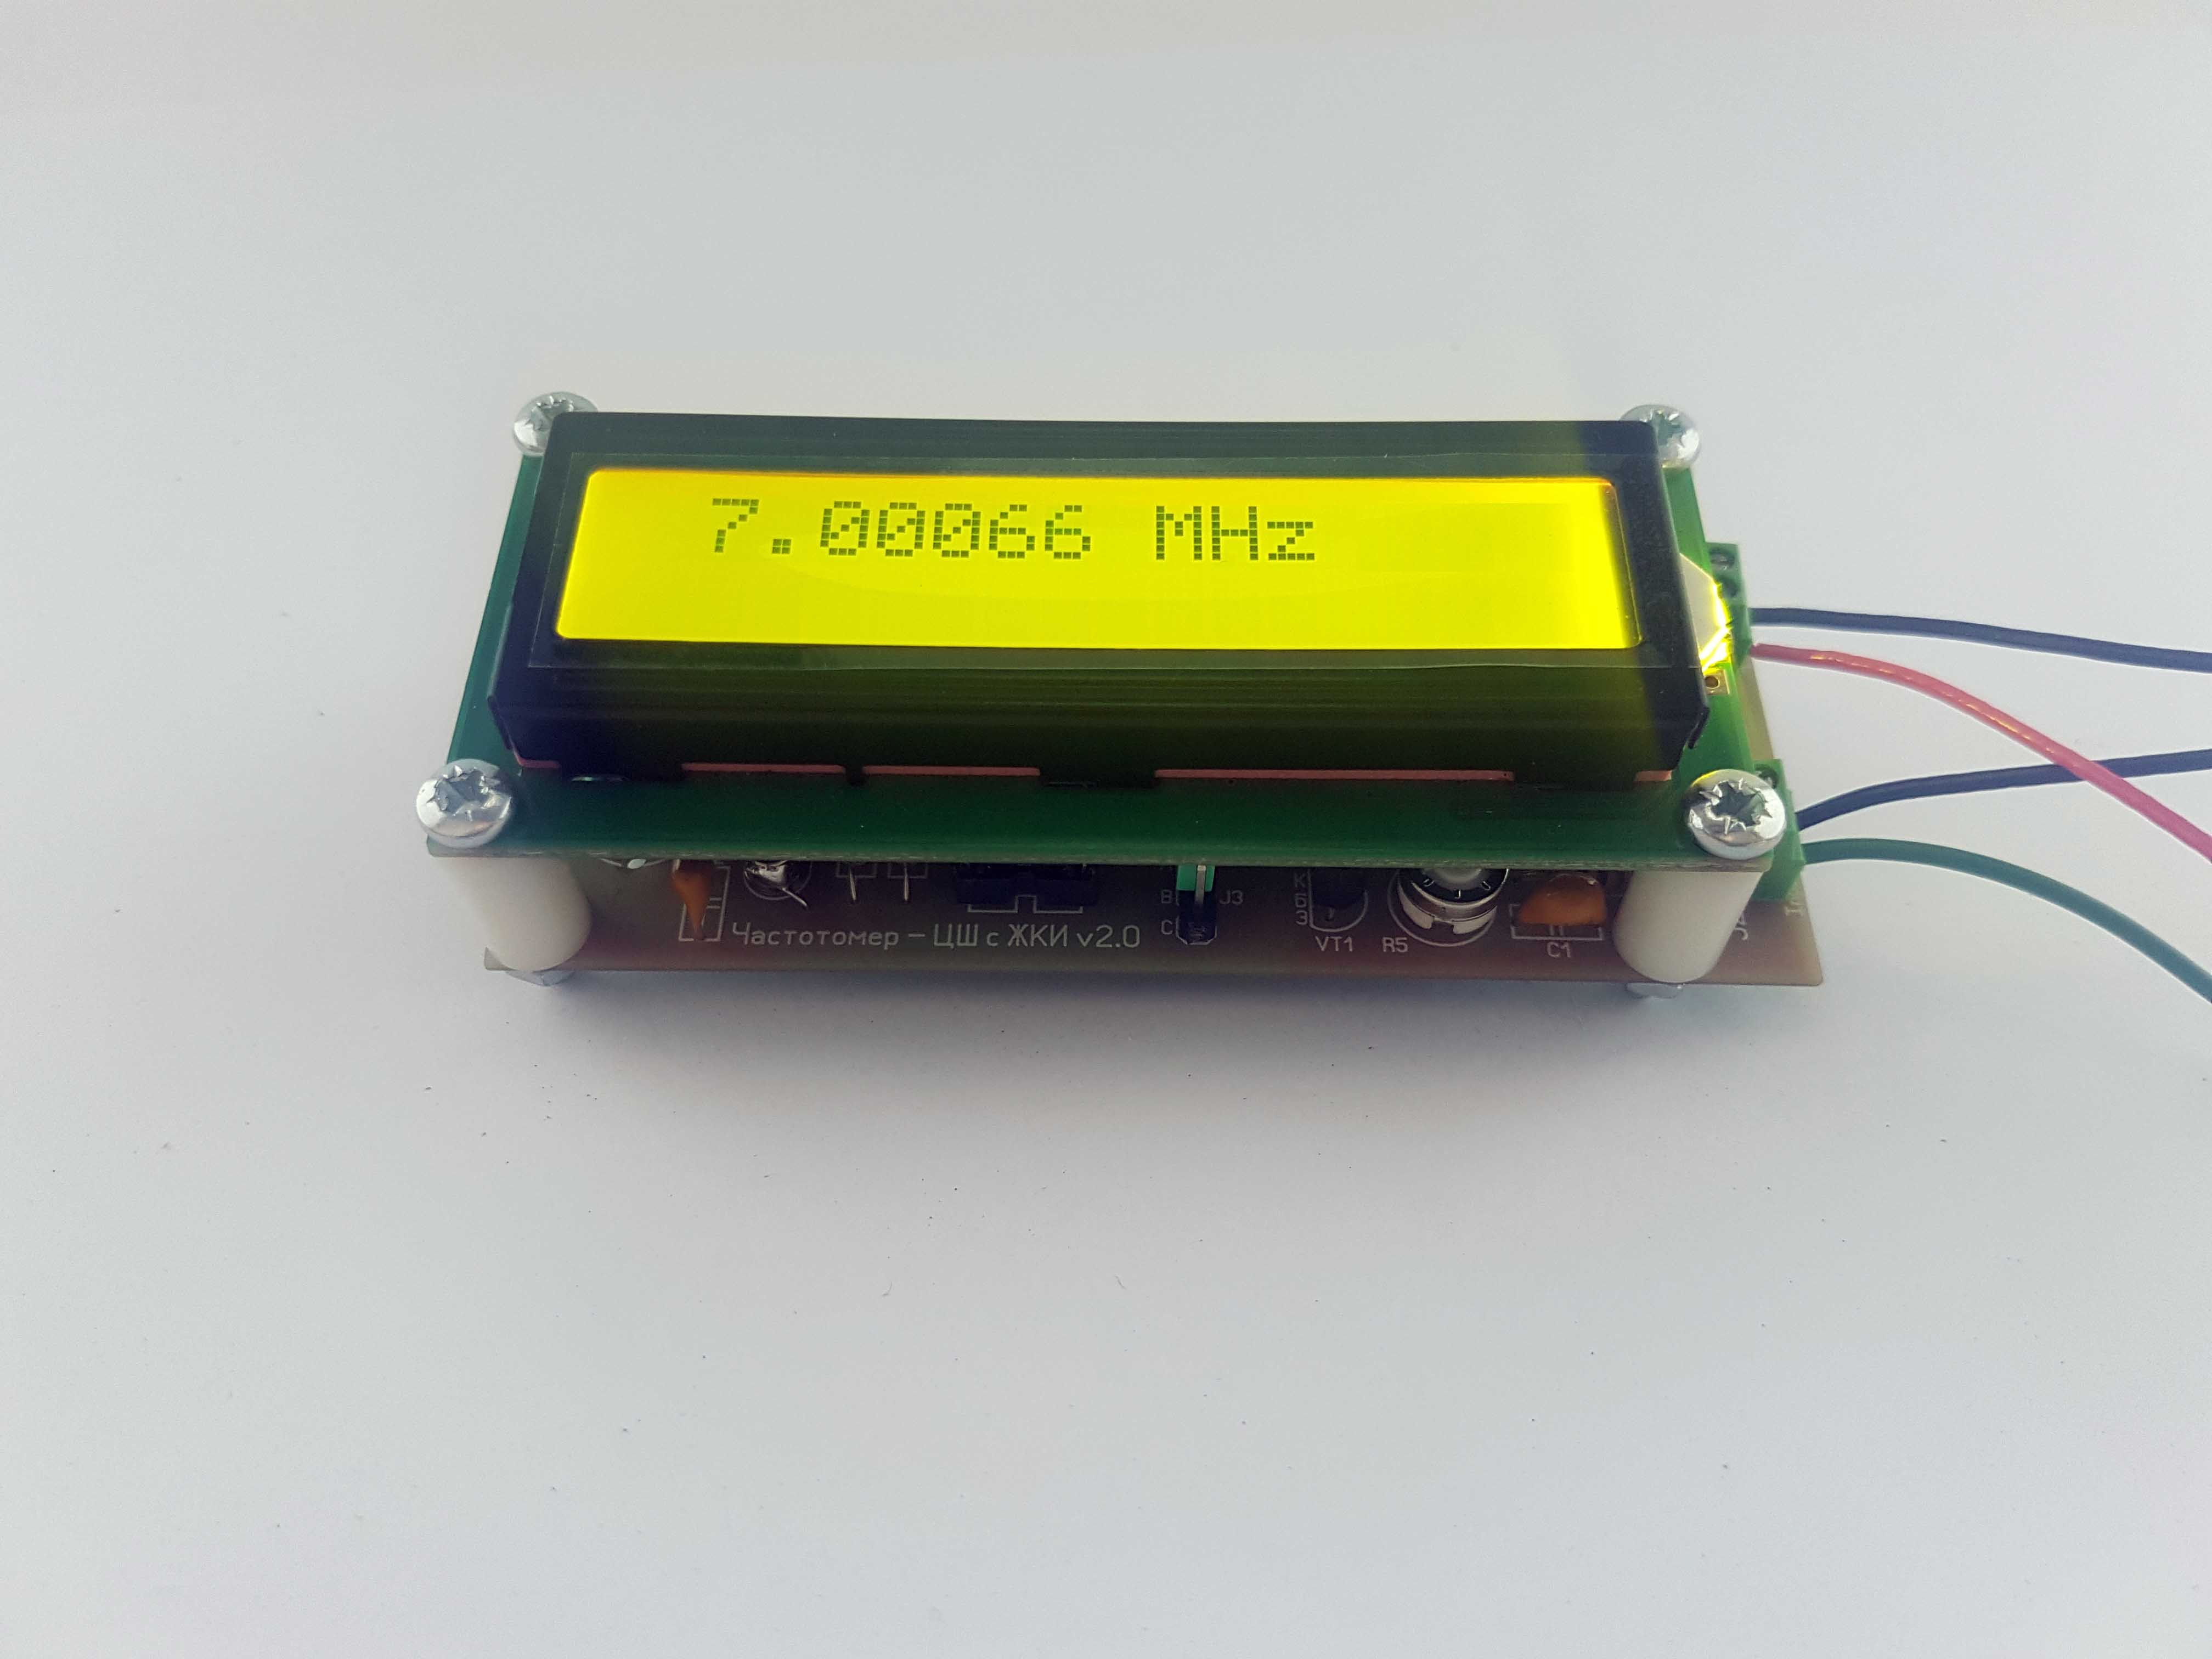 50 Mhz Frequency Counter